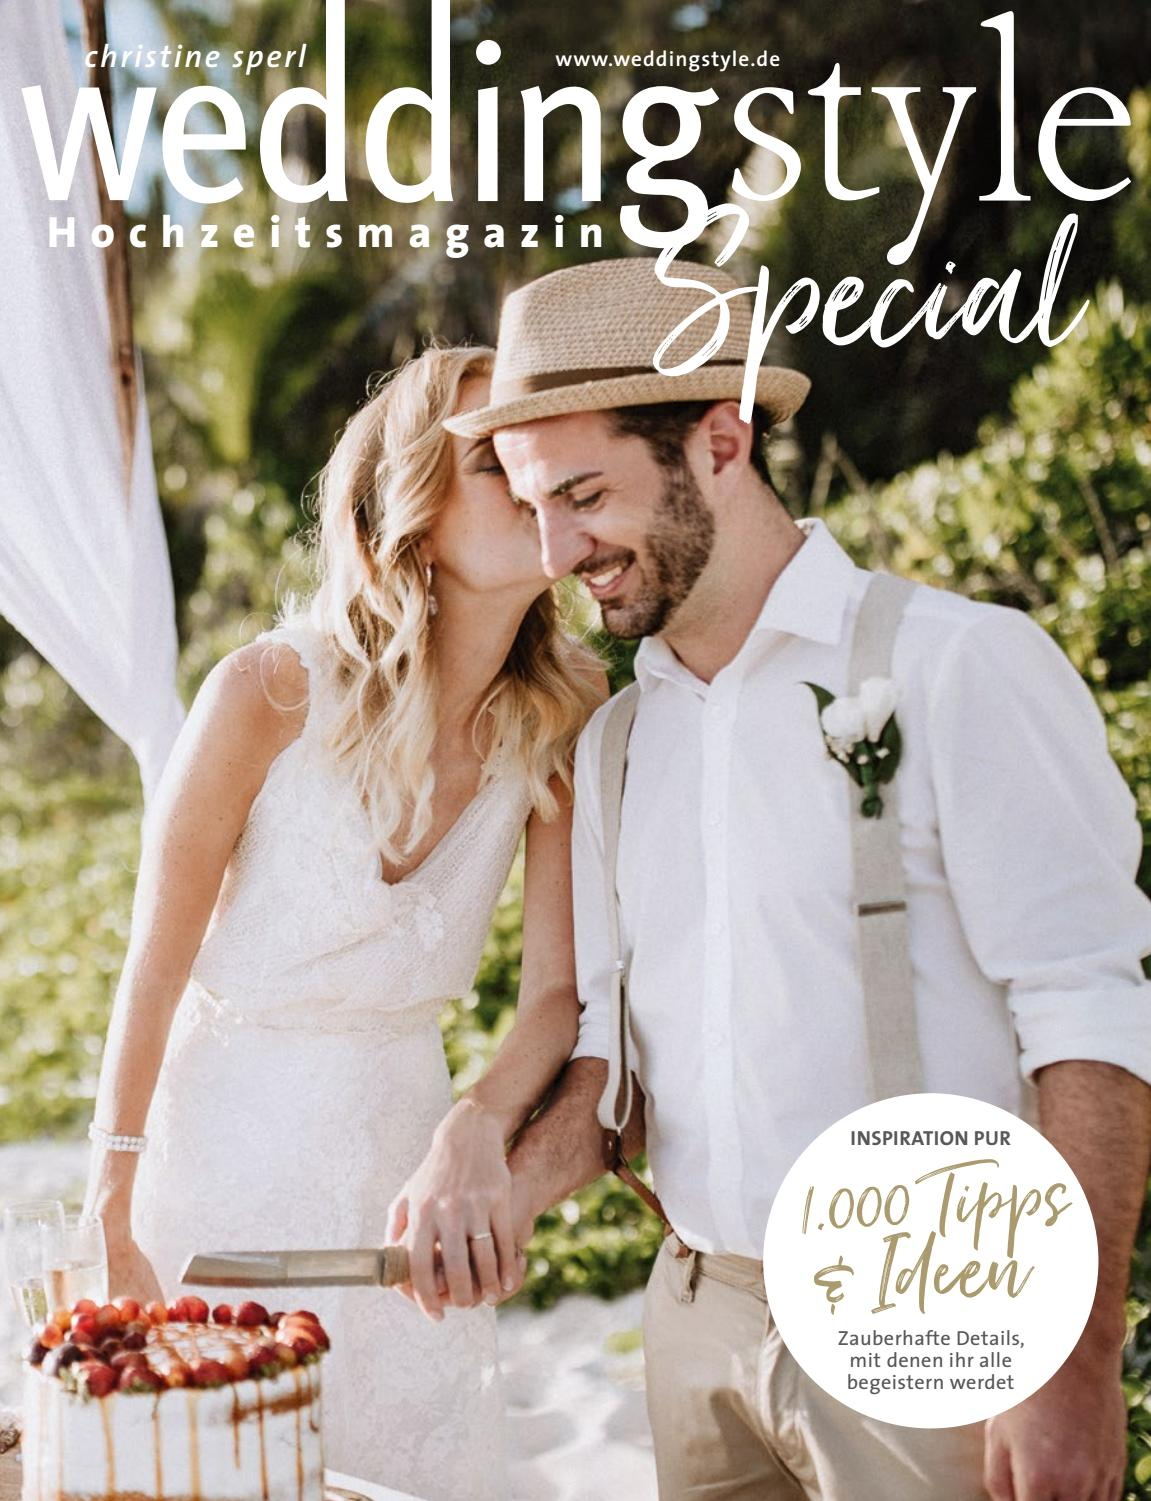 Weddingstyle Hochzeitsmagazin Special Issue By